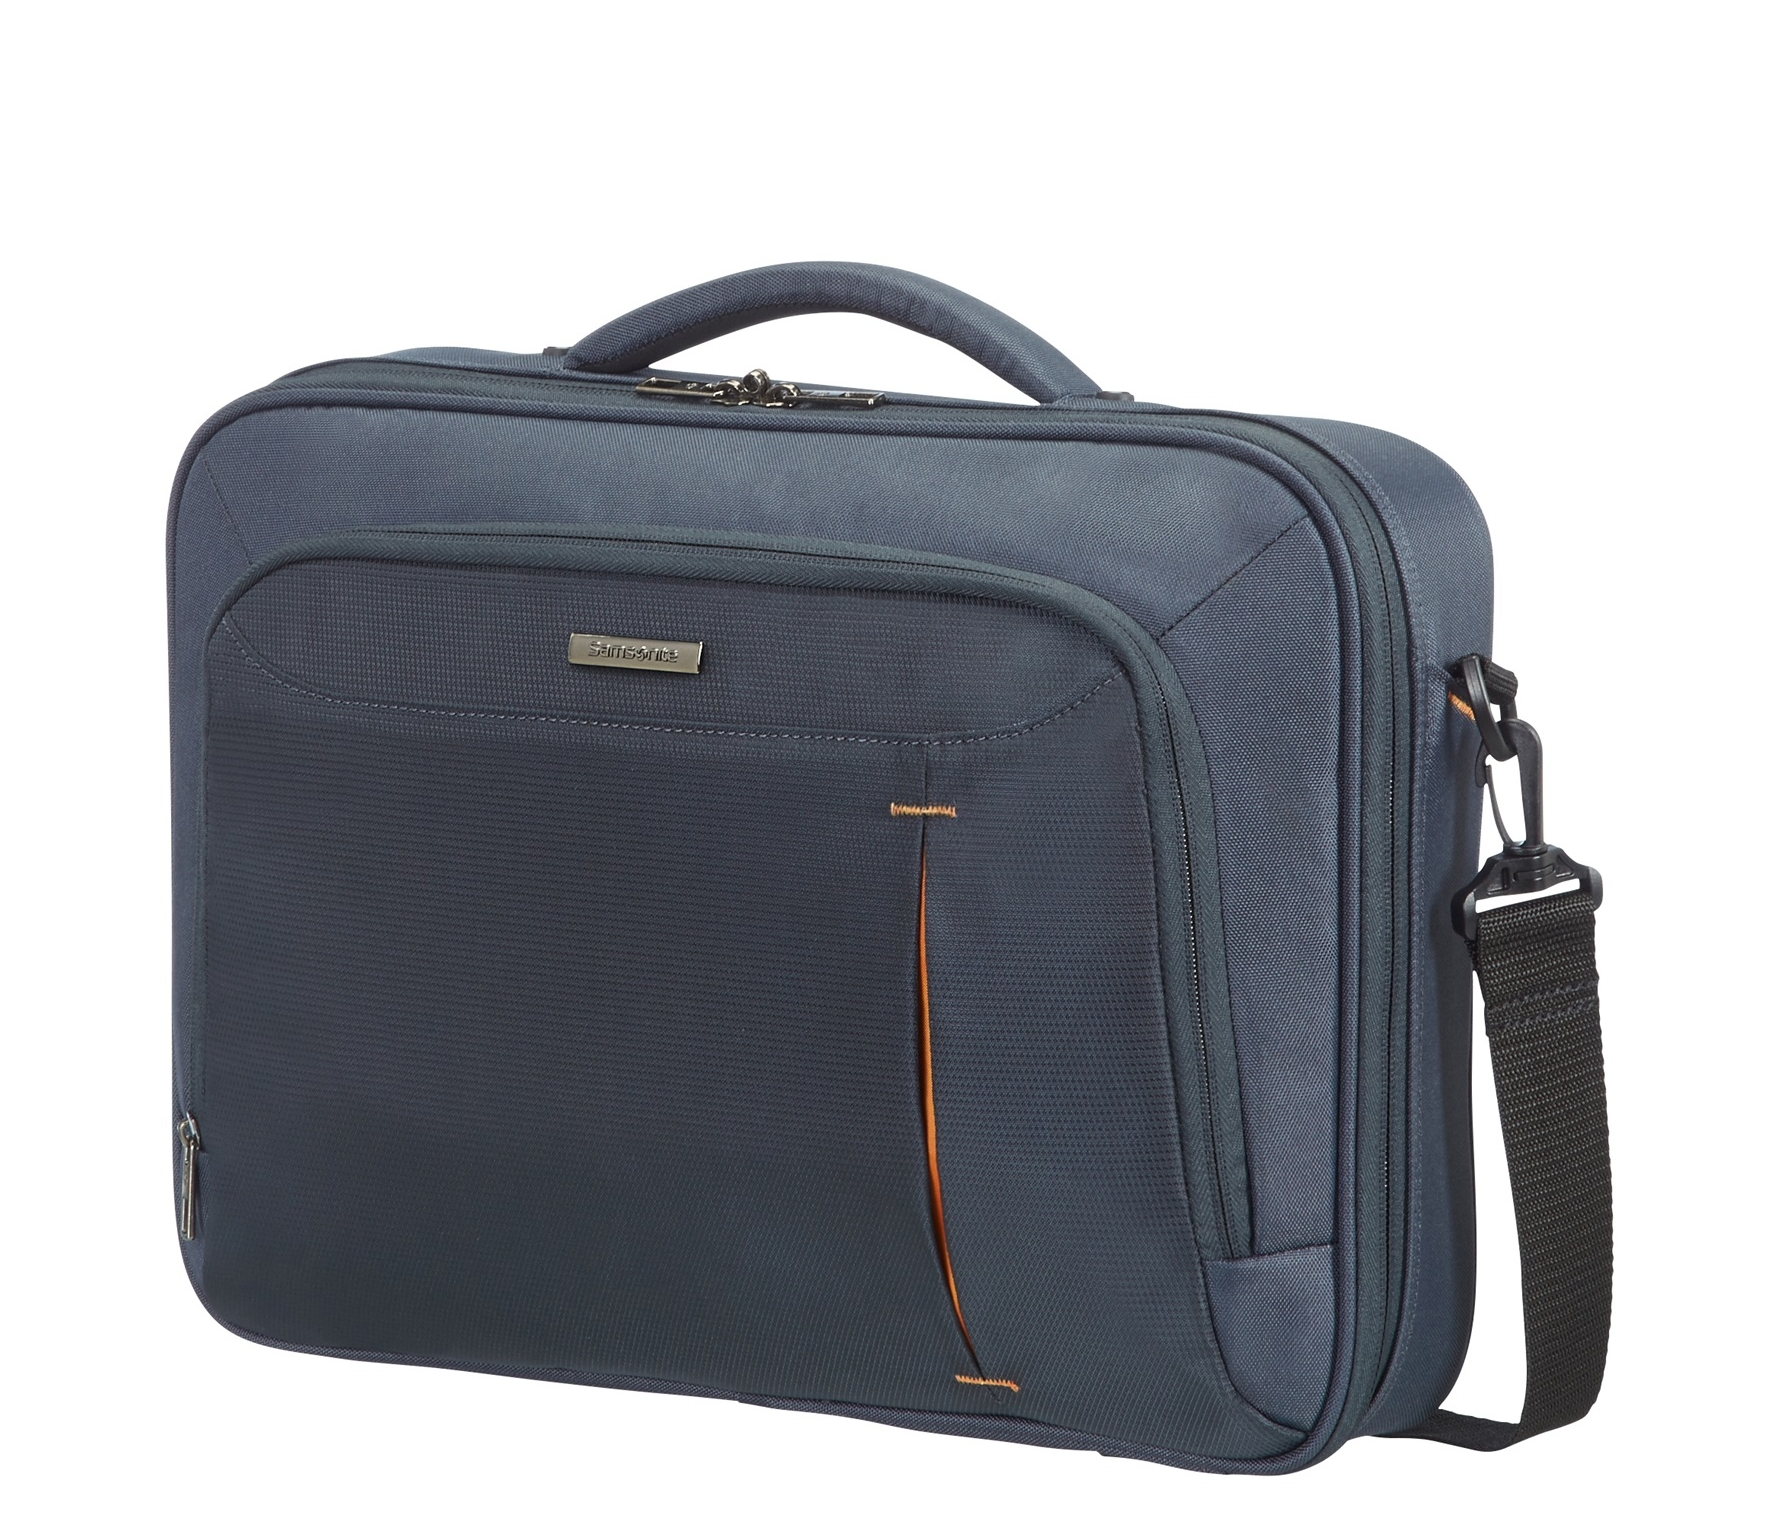 SAMSONITE - BORSE NOTEBOOK - 5414847545313